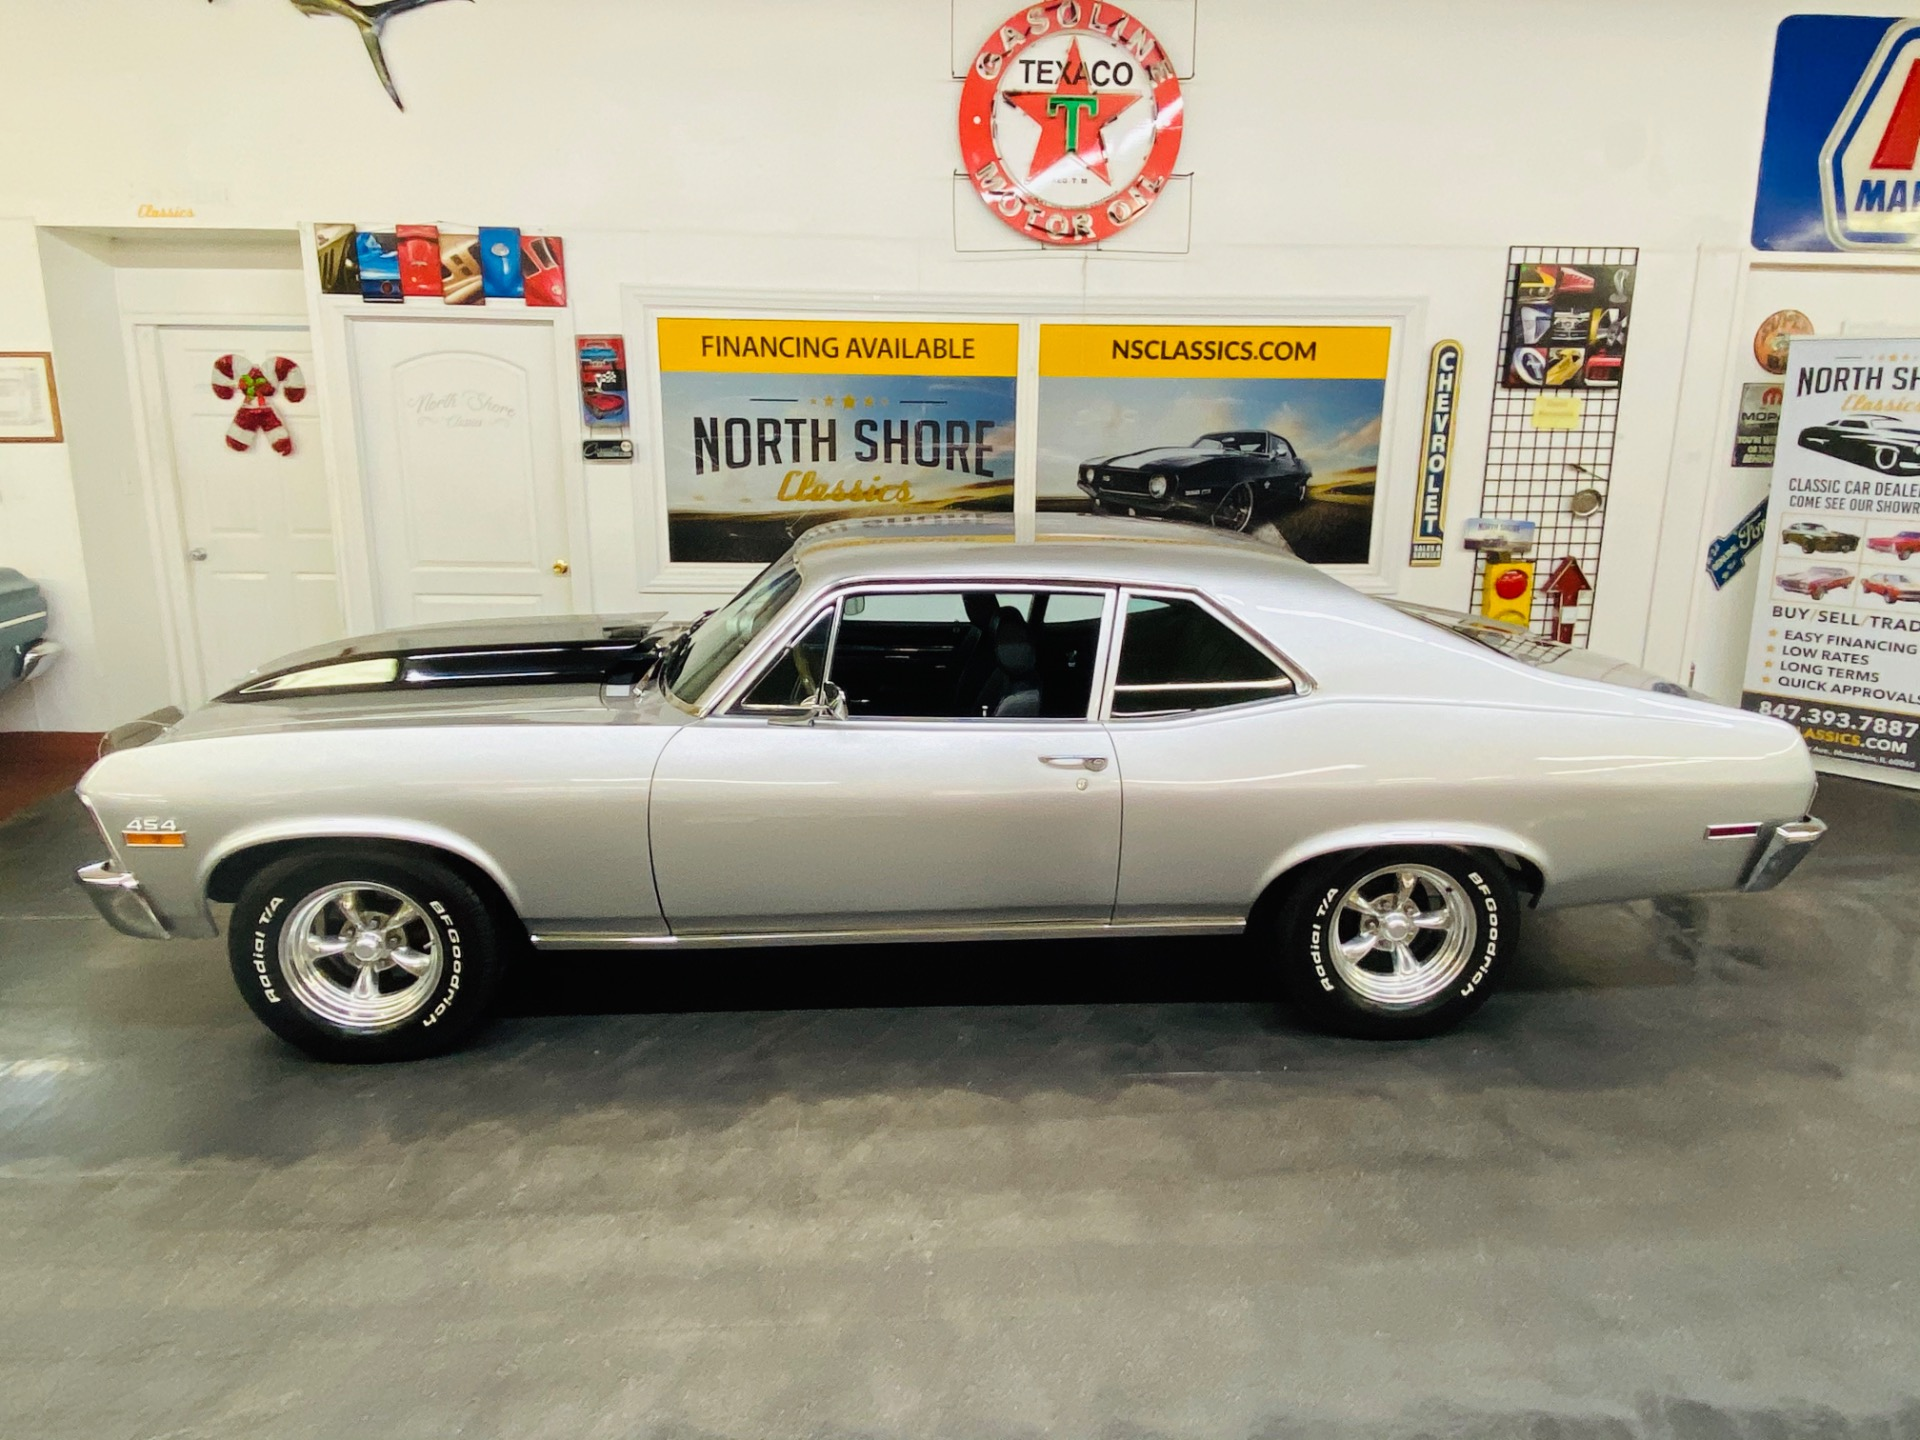 Used 1970 Chevrolet Nova - 454 BIG BLOCK - 4 SPEED MANUAL - VERY CLEAN - SEE VIDEO | Mundelein, IL